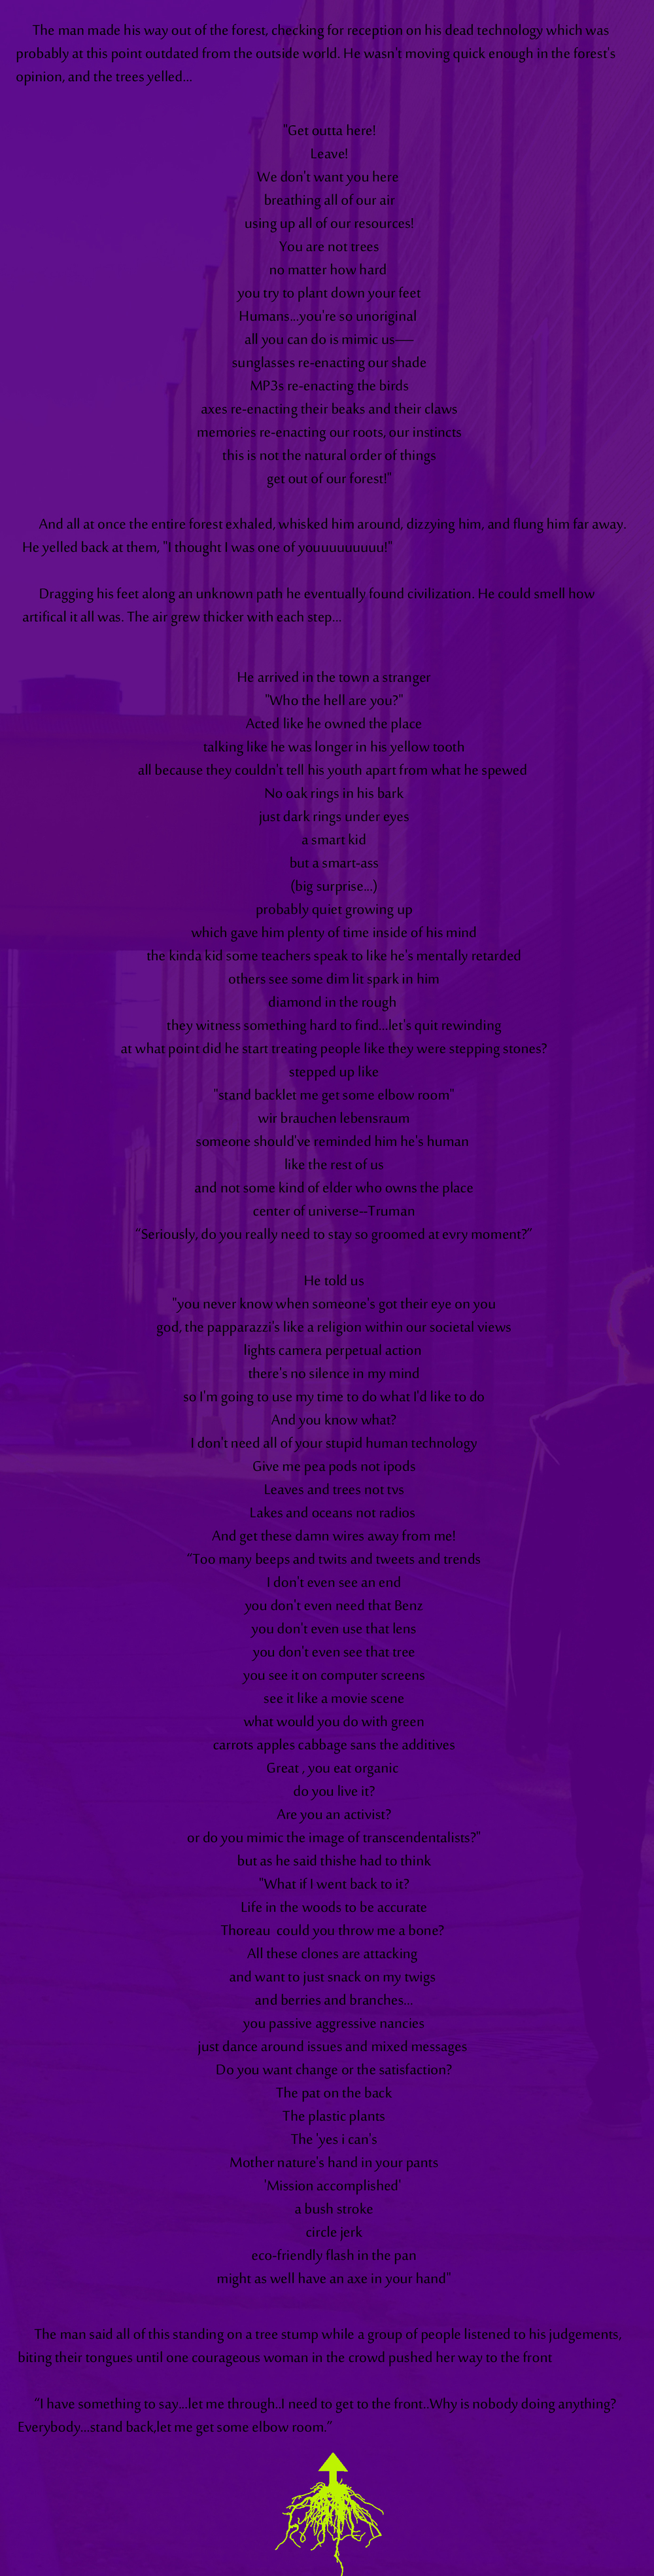 04 Elbow Room lyrics